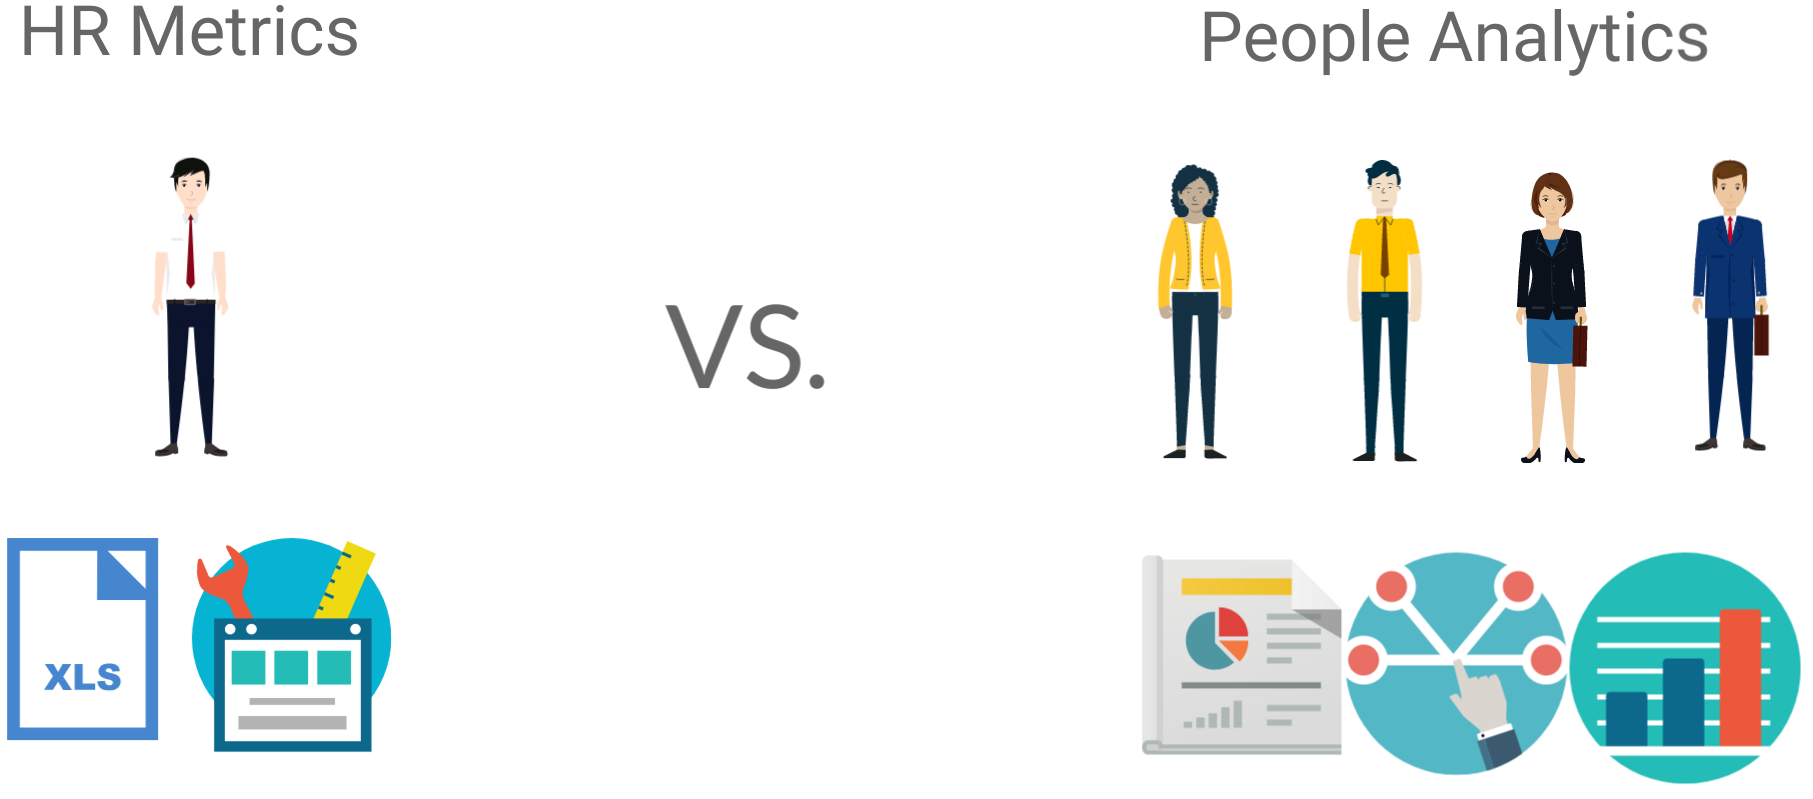 HR metrics versus People Analytics